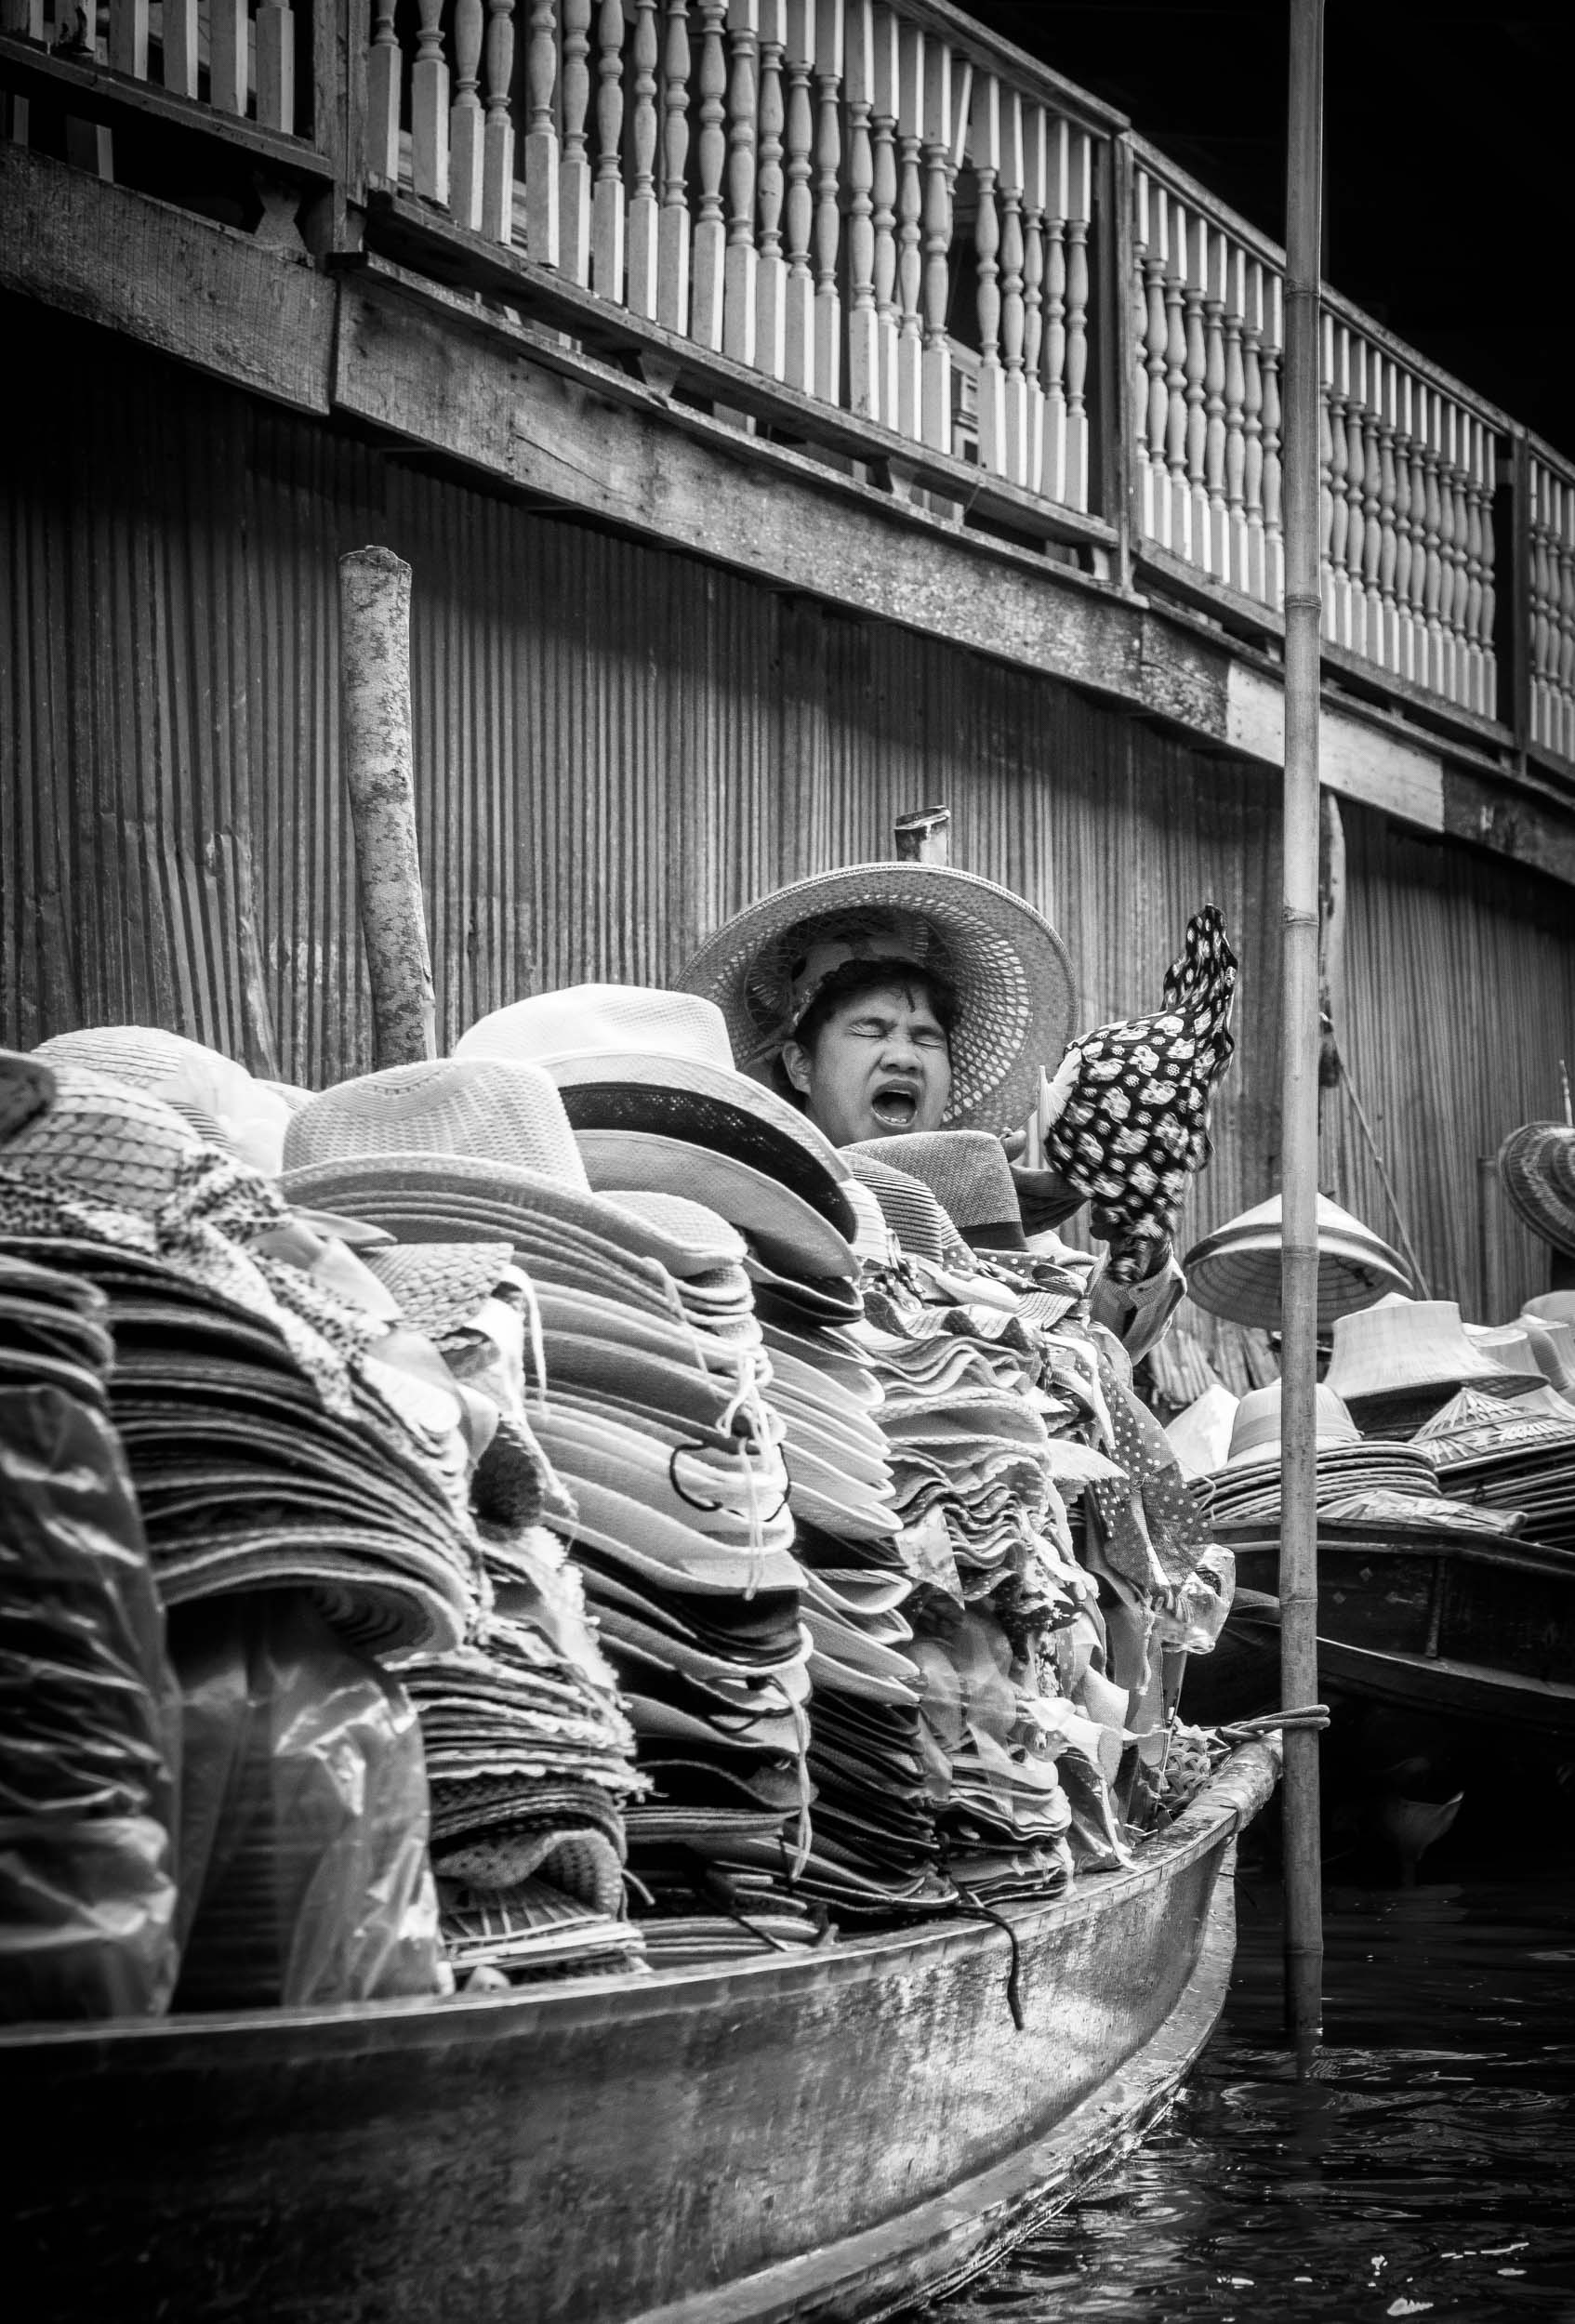 Selling Hats in Ratchaburi, Thailand.